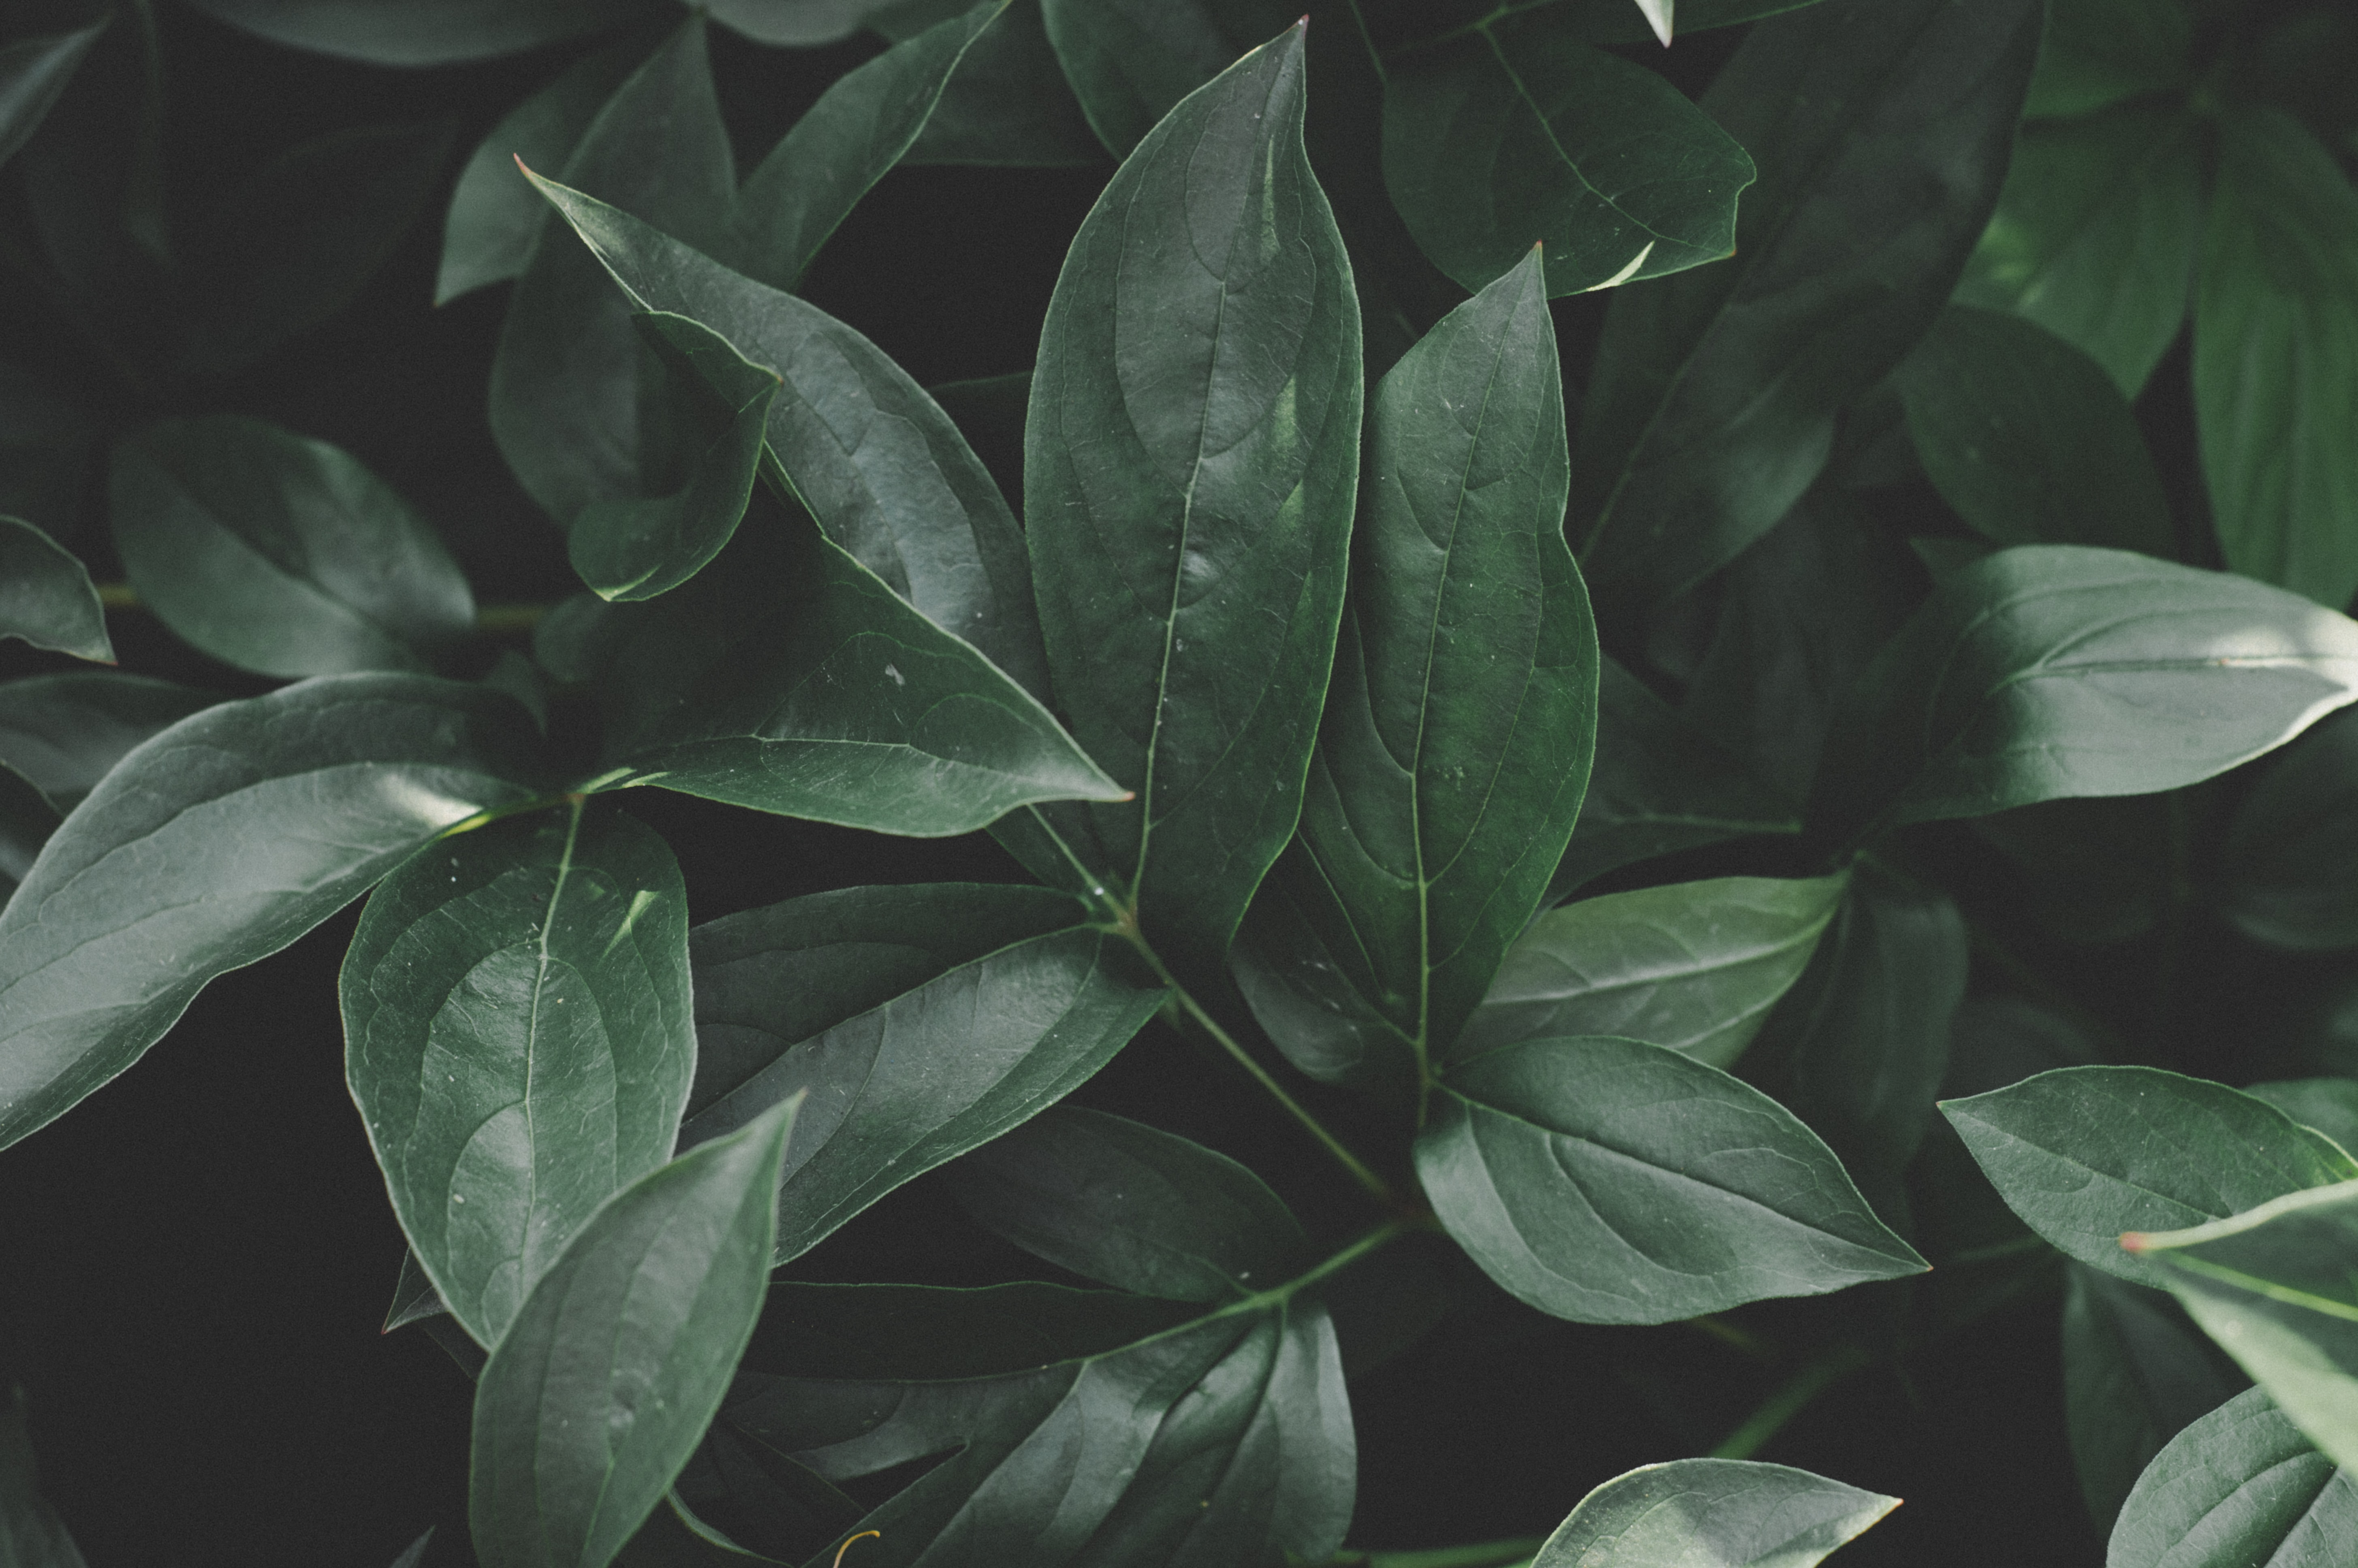 green leafed plant during daytime